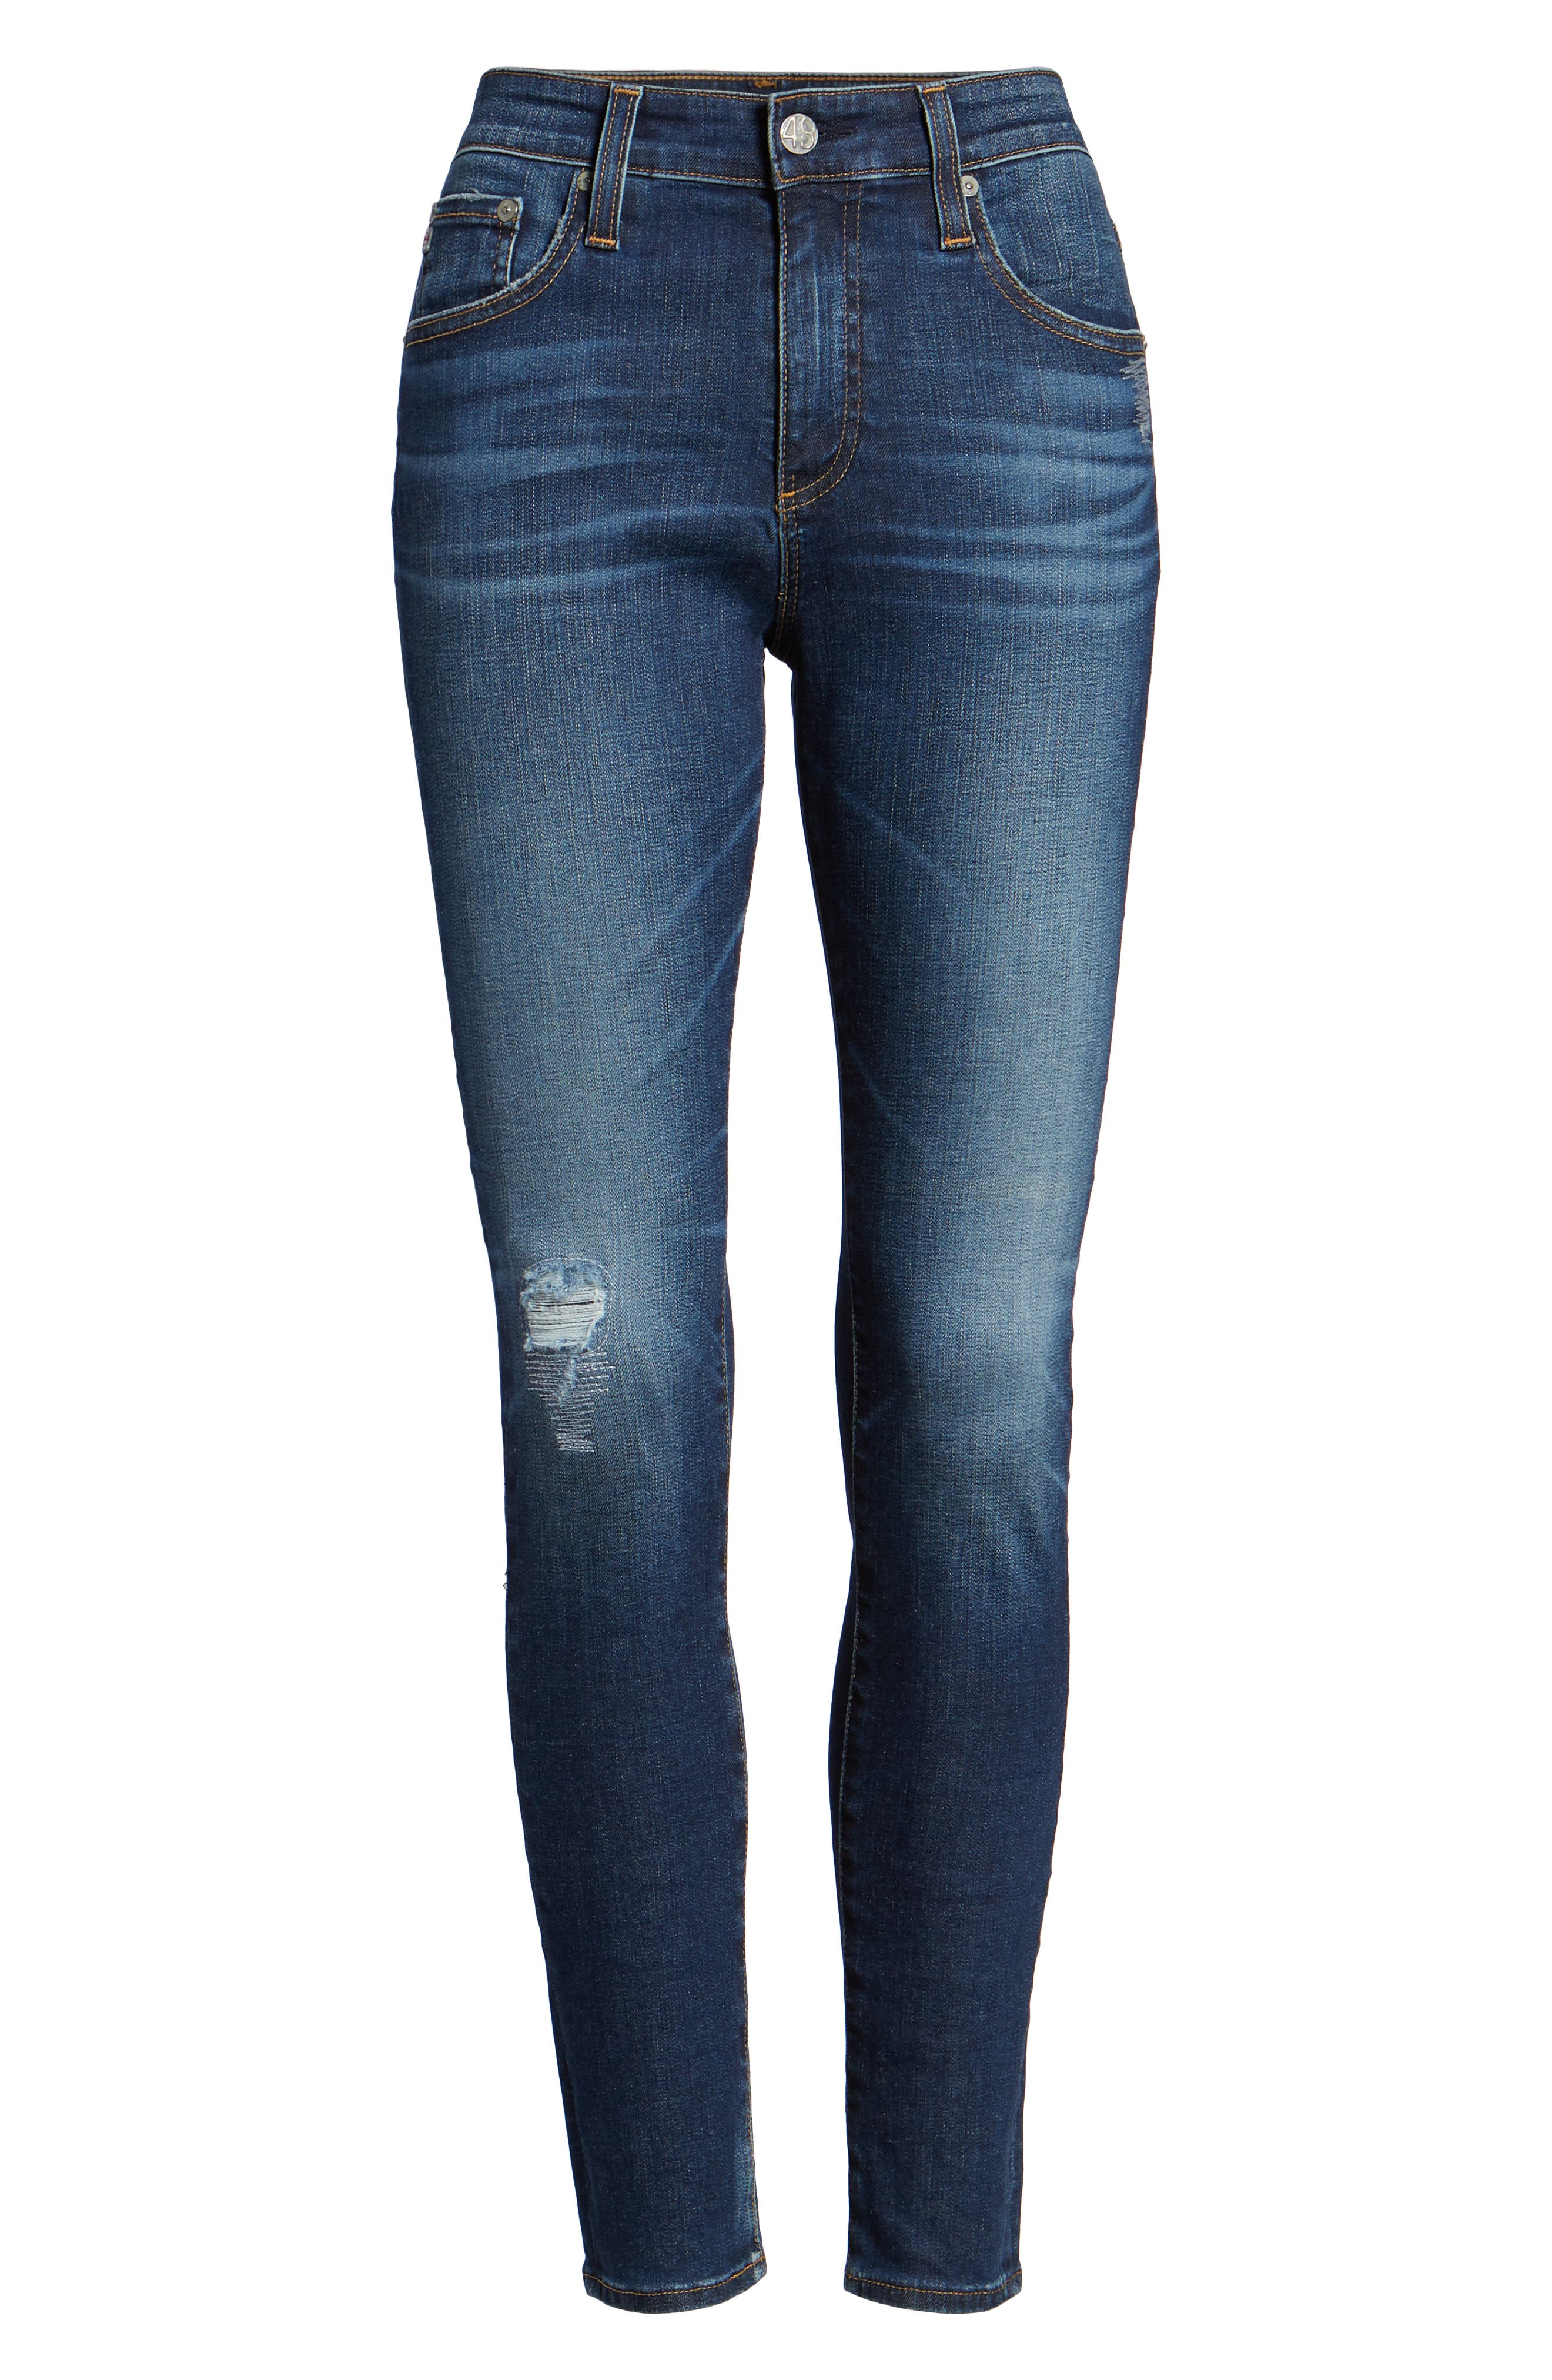 The Farrah High Waist Ankle Skinny Jeans,                             Alternate thumbnail 7, color,                             11Y SHIFTED MENDED